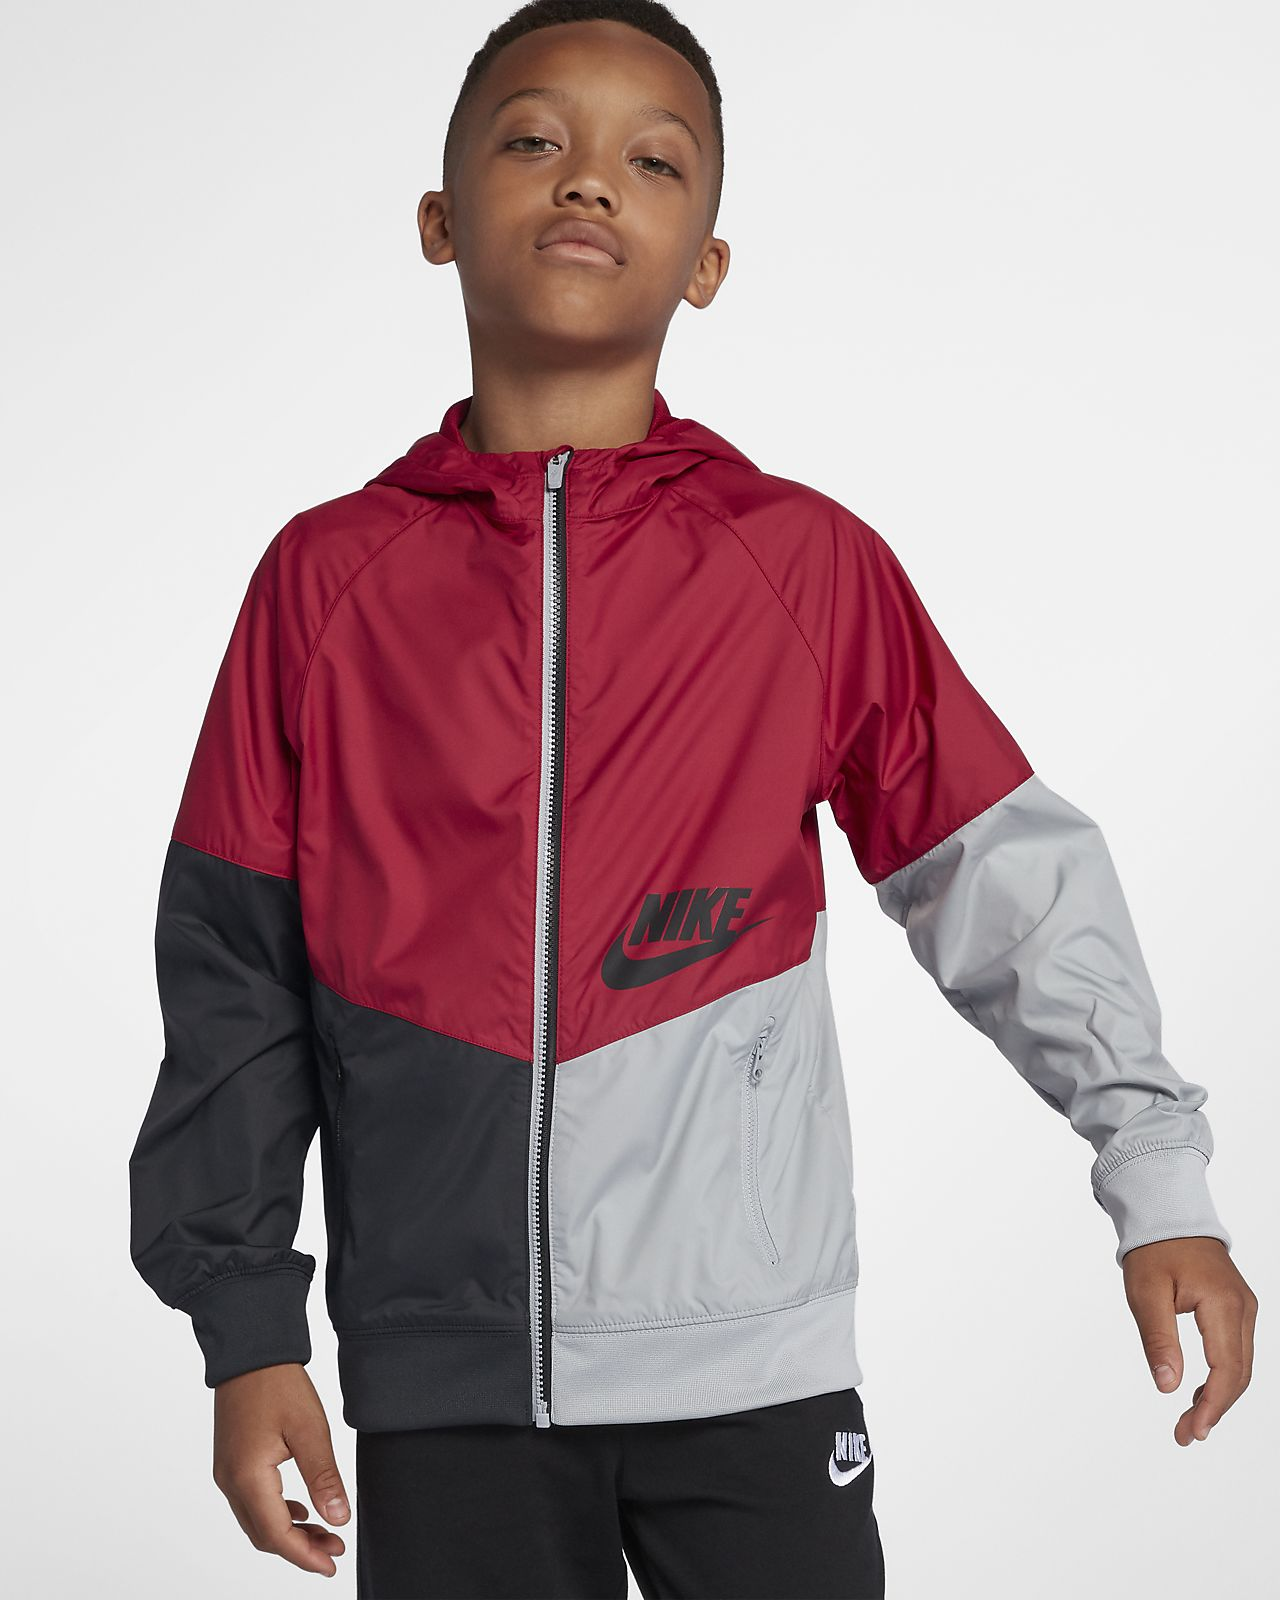 7c3845ccad93 Nike Sportswear Windrunner Older Kids  (Boys ) Full-Zip Hoodie. Nike ...